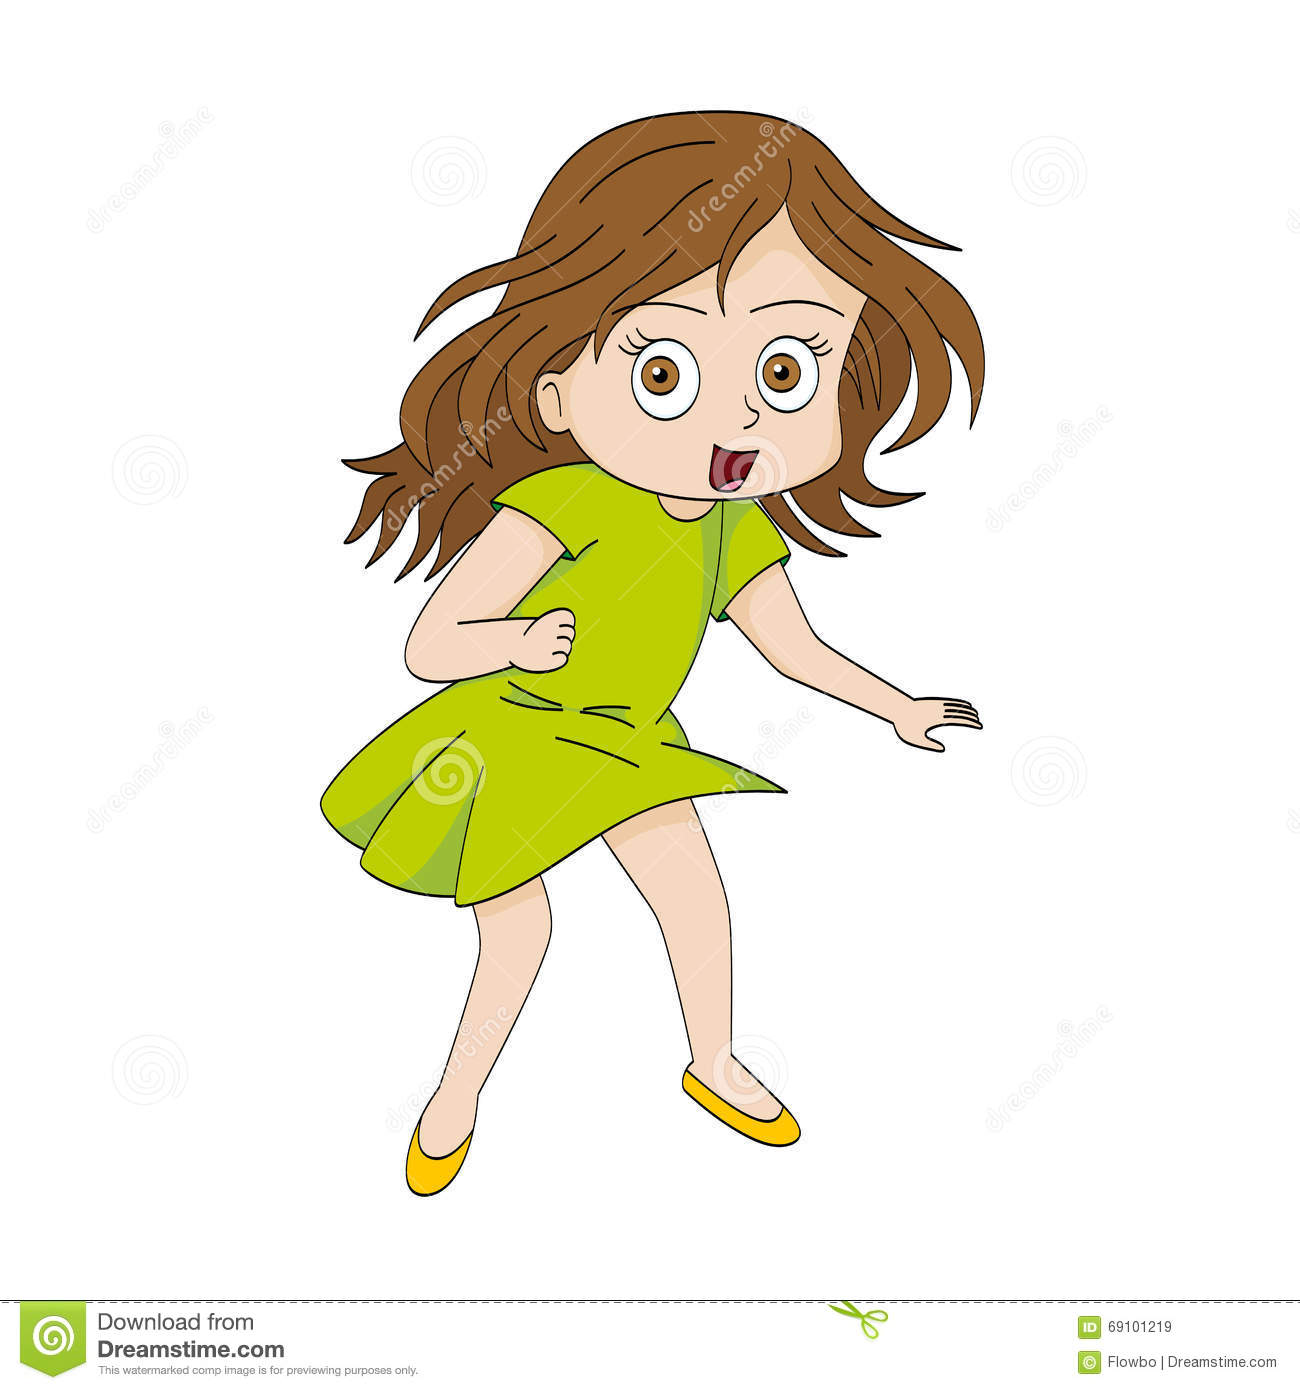 Funny cartoon girl stock vector. Image of comic, child ...